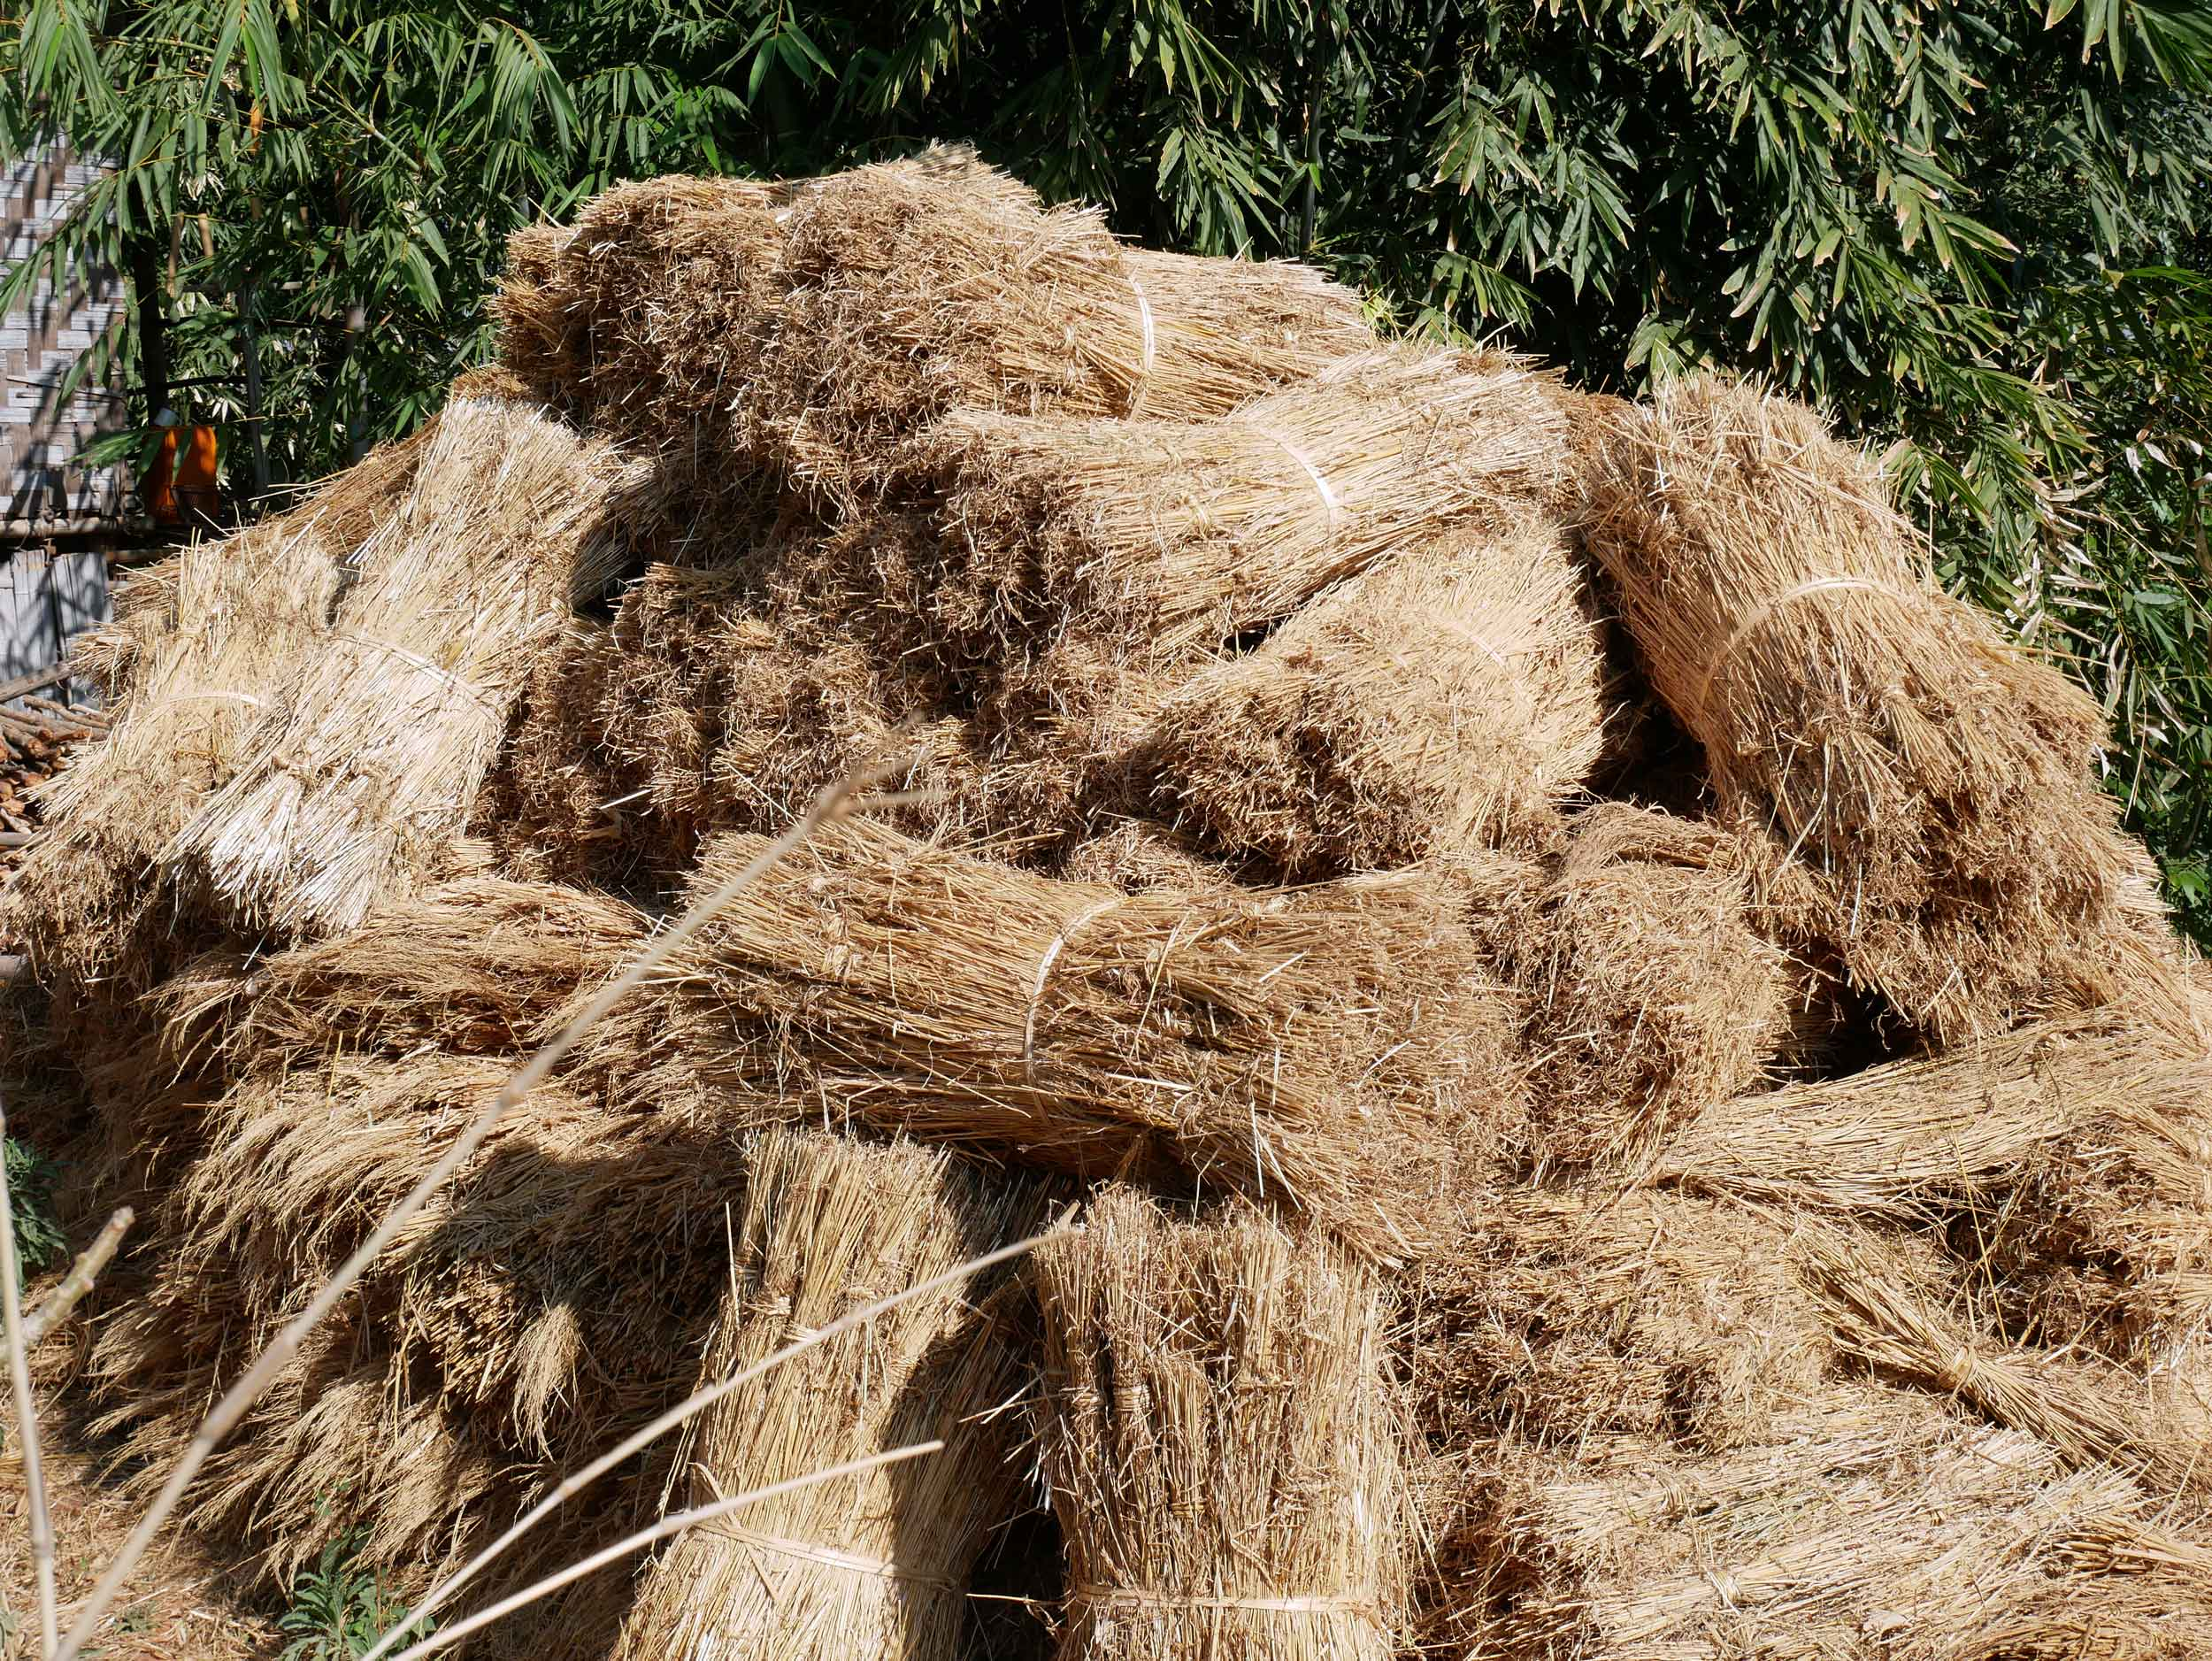 Along the way, we often saw piles of wheat, used to supplement the diets of livestock during the dry season (Feb 21).